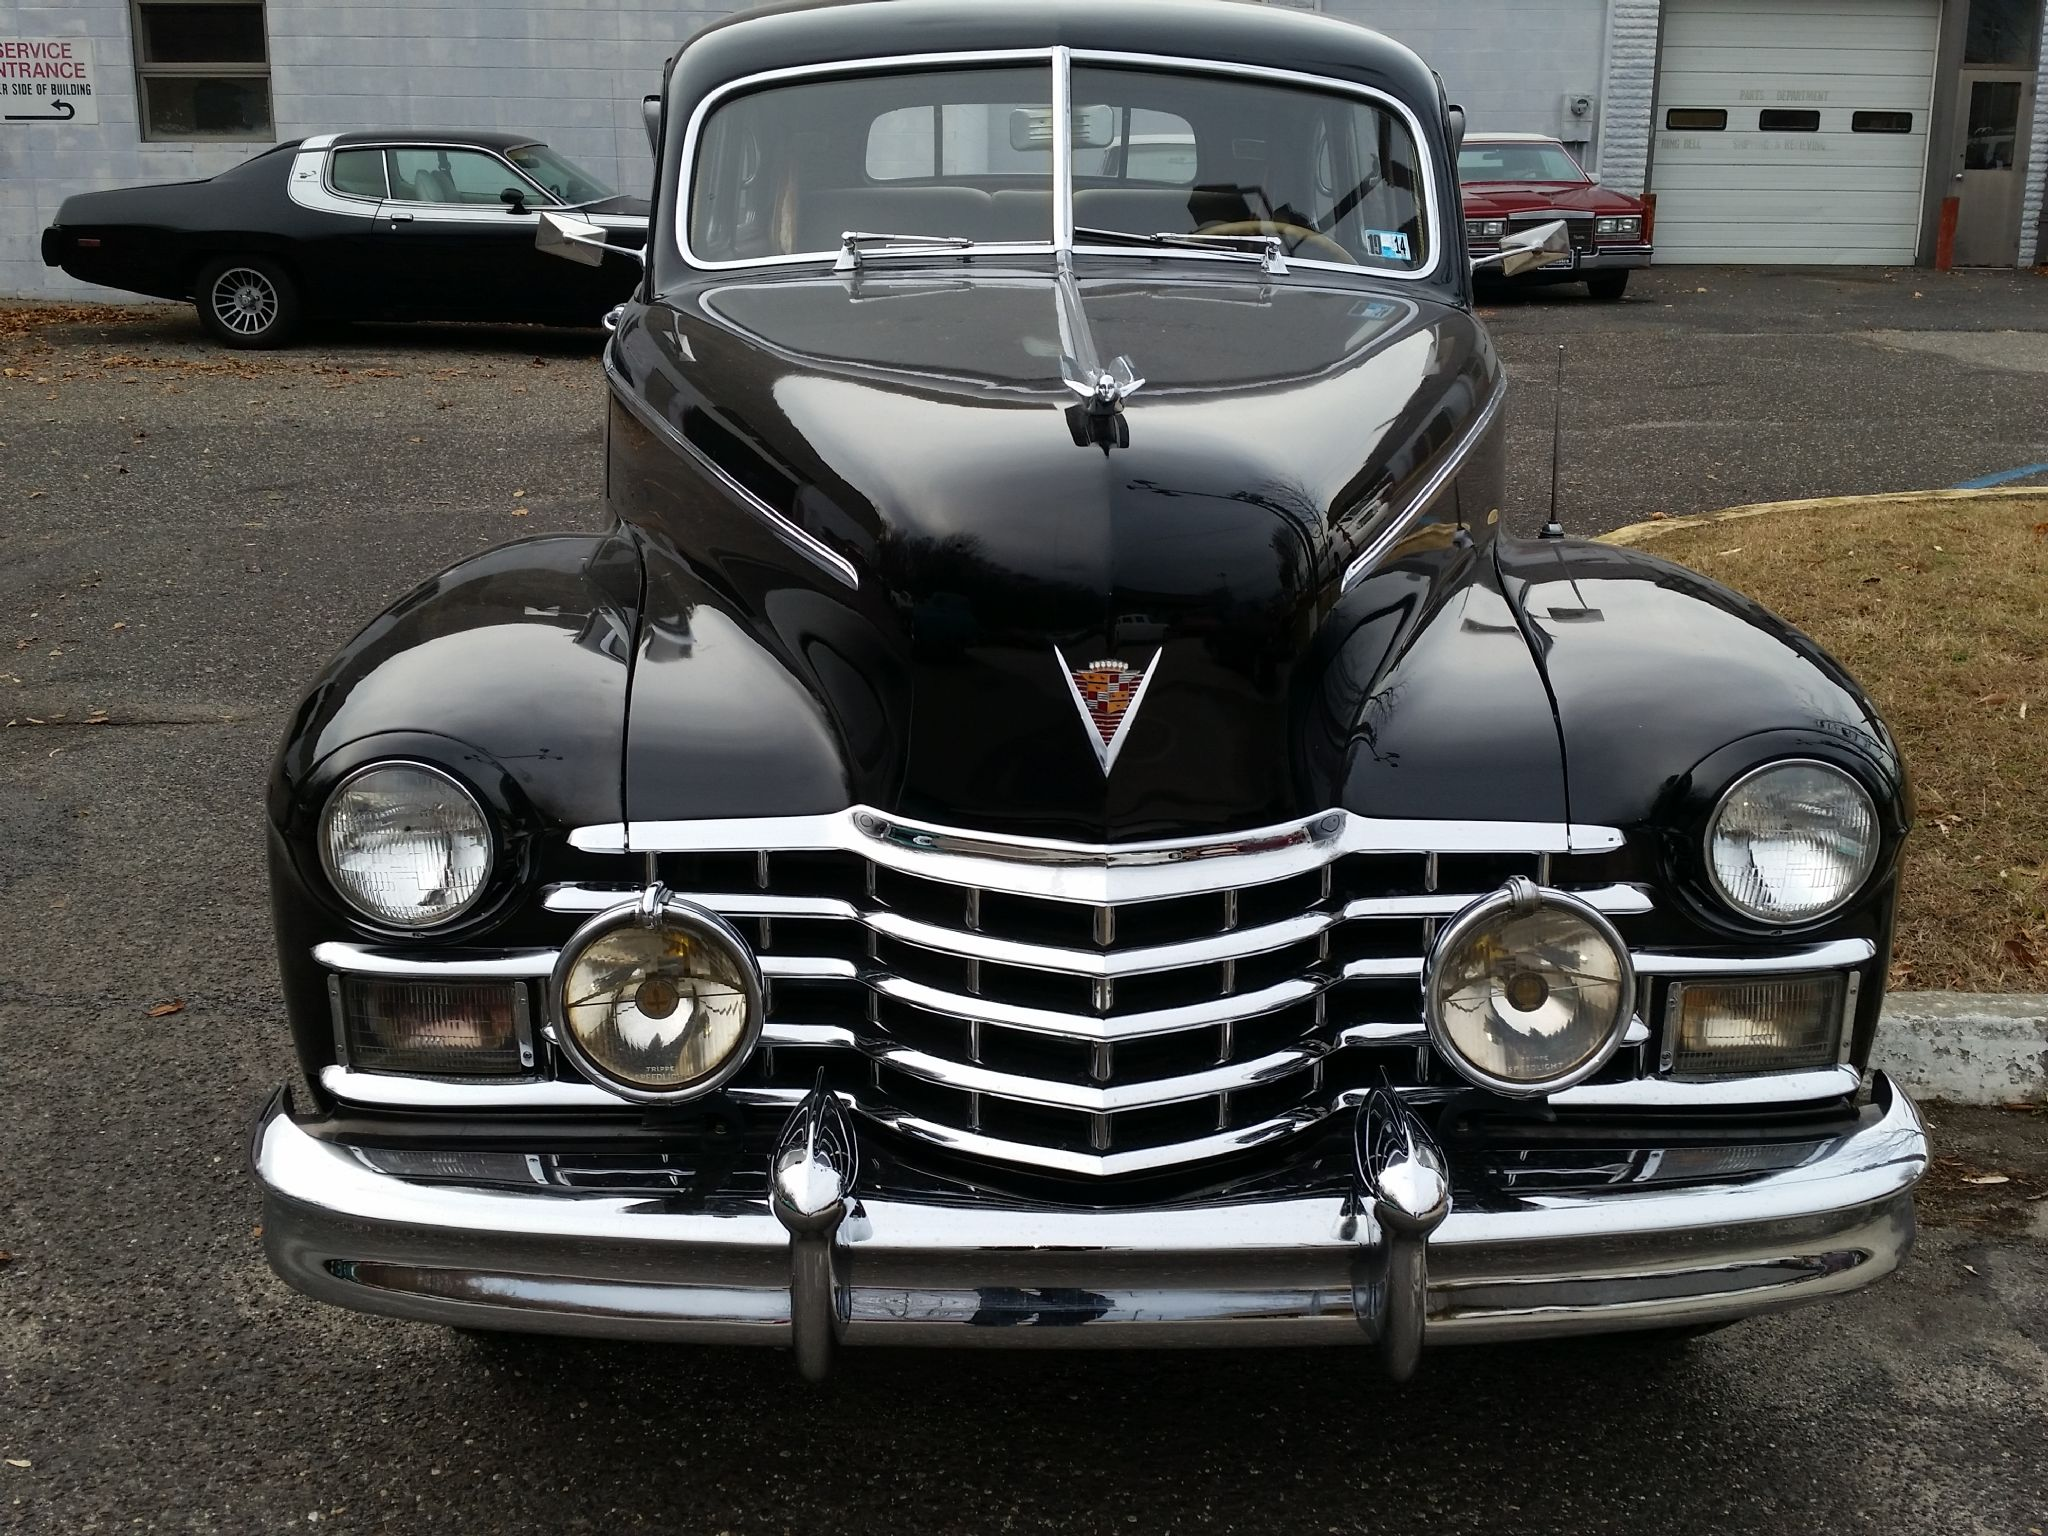 1947 CADILLAC SORRY JUST SOLD!!! FLEETWOOD 4